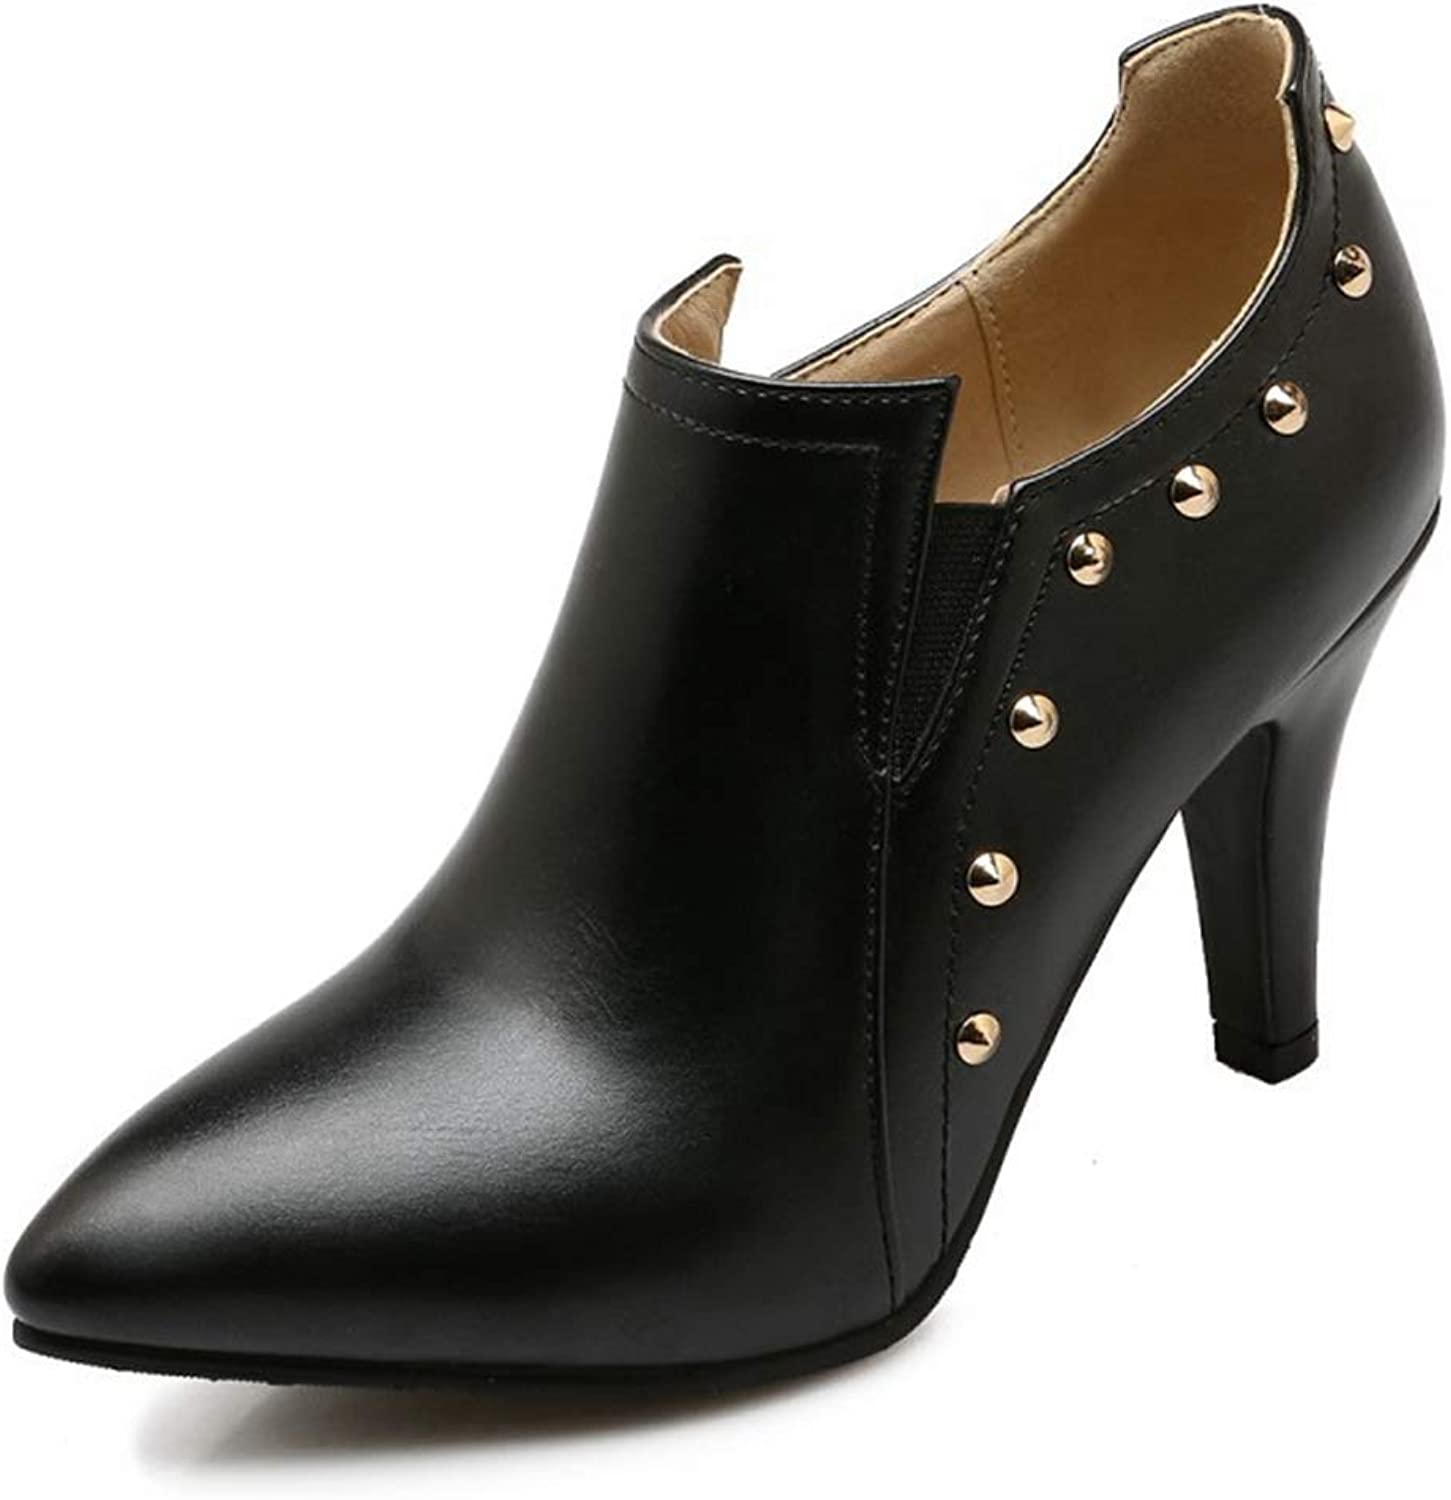 CYBLING Womens Cutout Studded High Heel Booties Slip on Pointed Toe Pumps Winter Ankle Boots